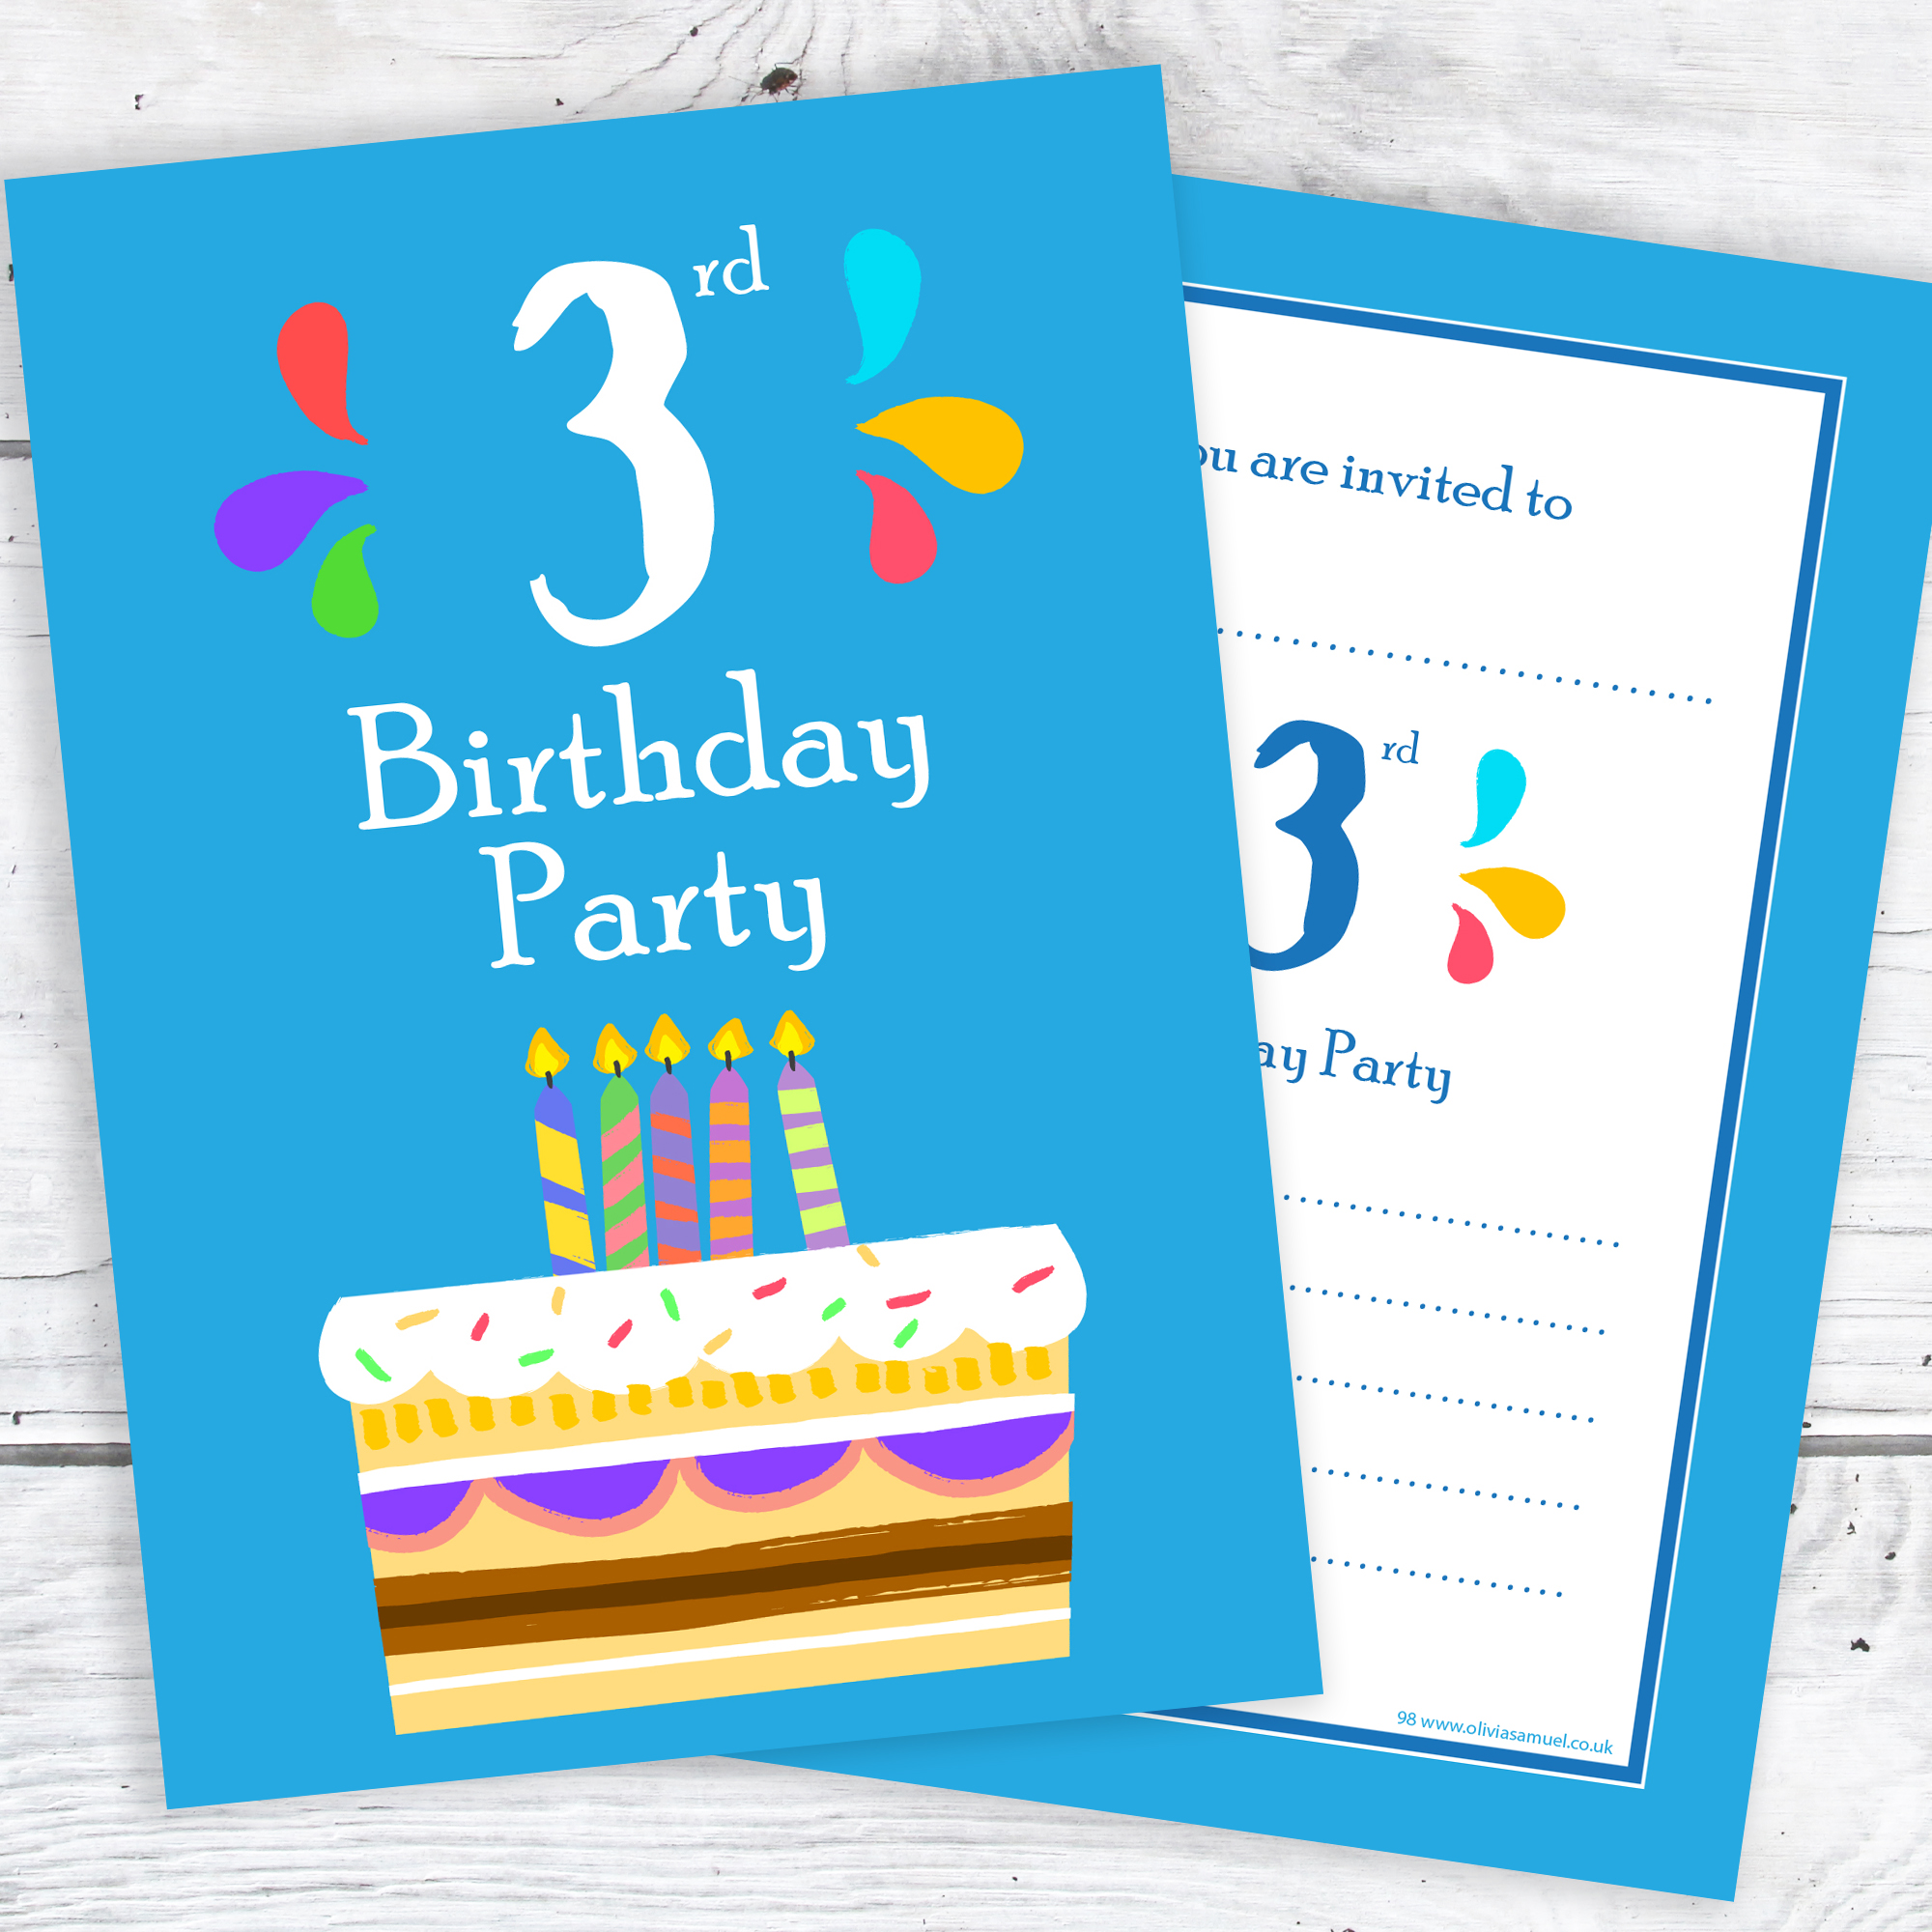 3rd Birthday Party Invitations 3 Candle Blue Cake Design With